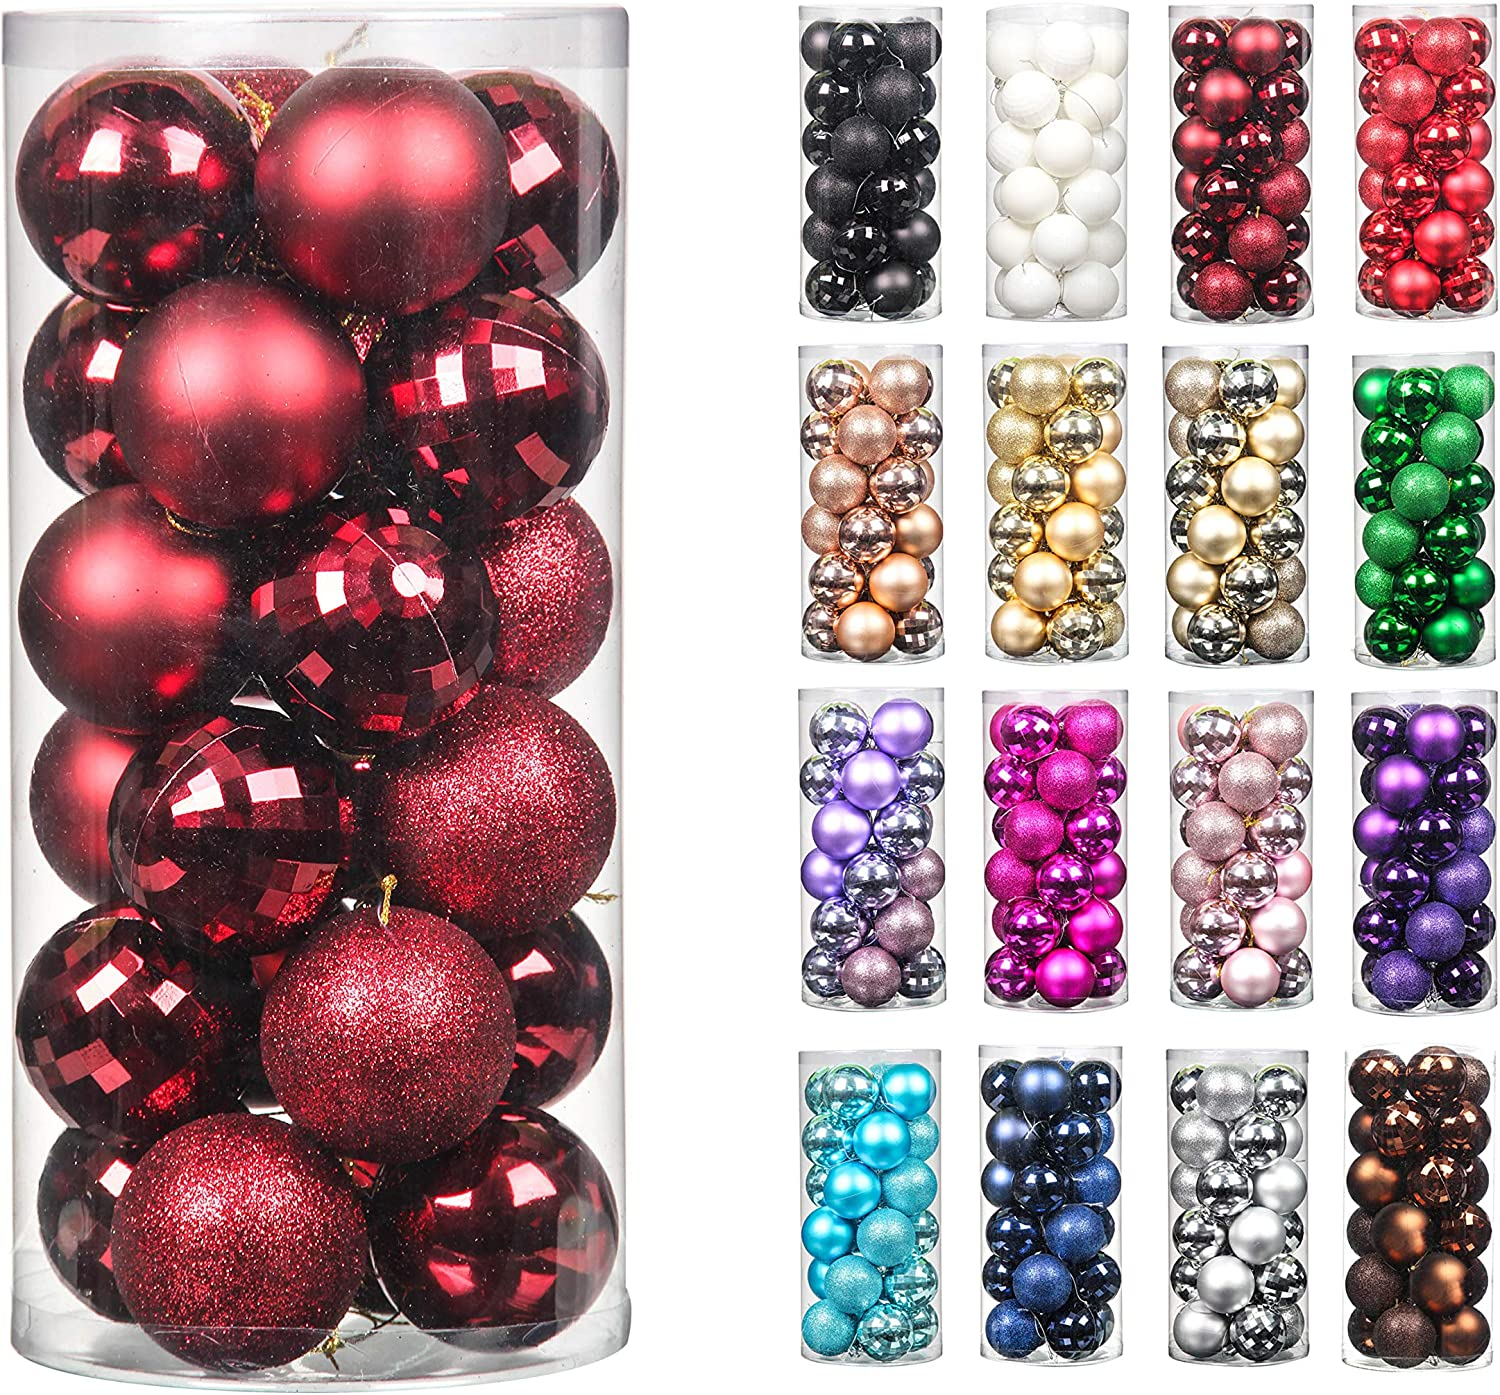 24pcs 2.36in Christmas Decoration Balls Shatterproof Color Set Ornaments Balls for Festival Wedding Home Party Decors Xmas Tree Hanging ( Burgundy)